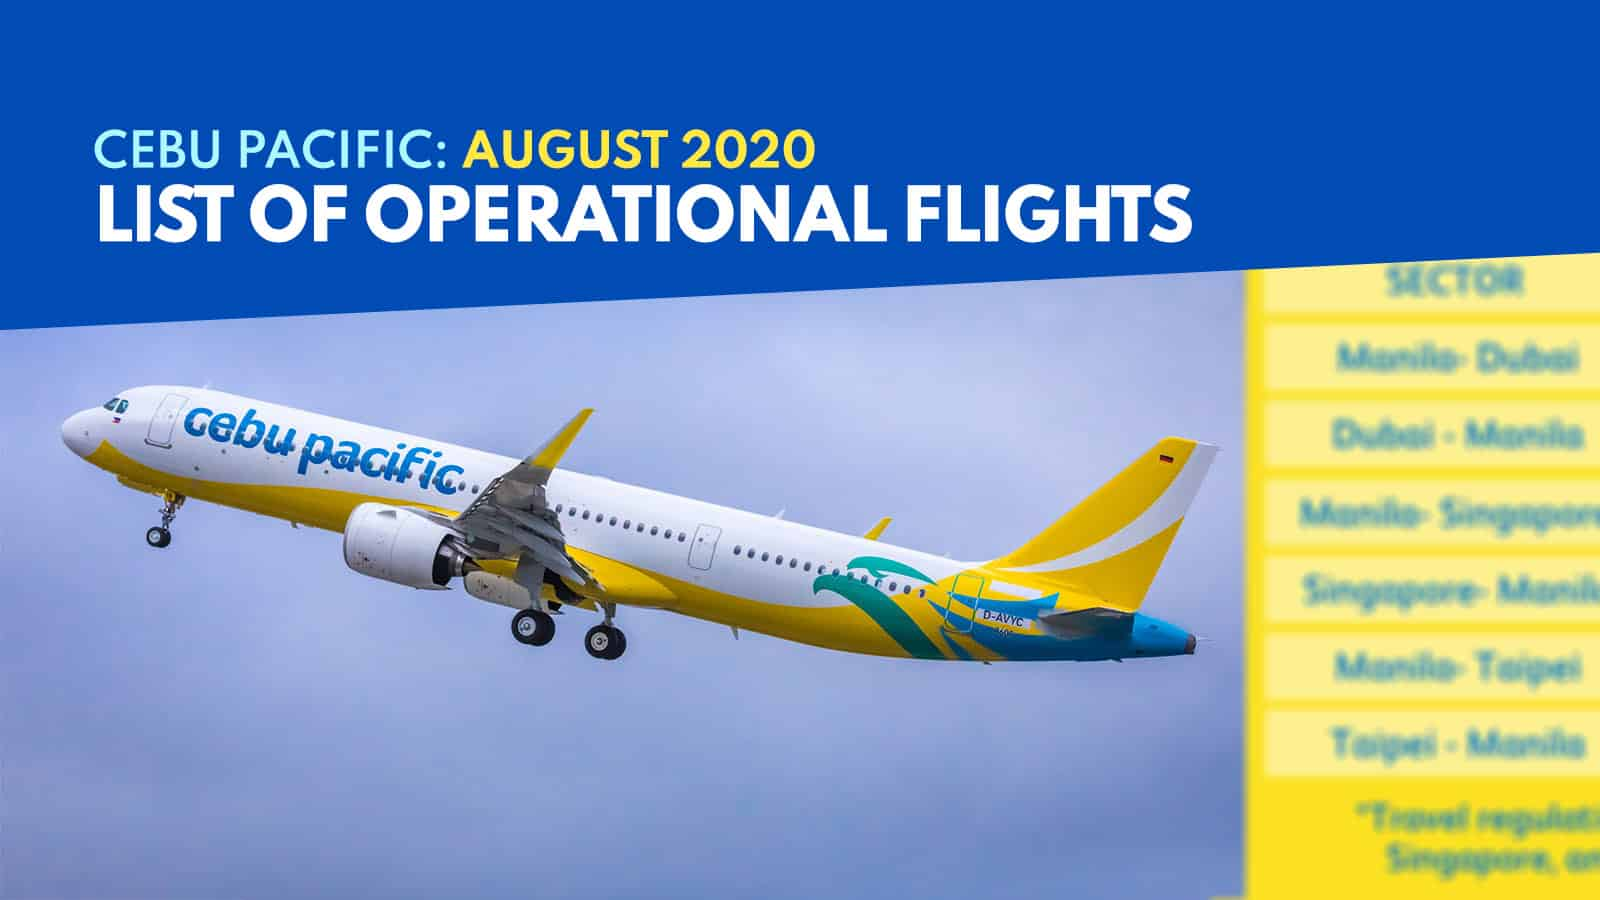 CEBU PACIFIC: List of Operational Flights for AUGUST 4-18 2020